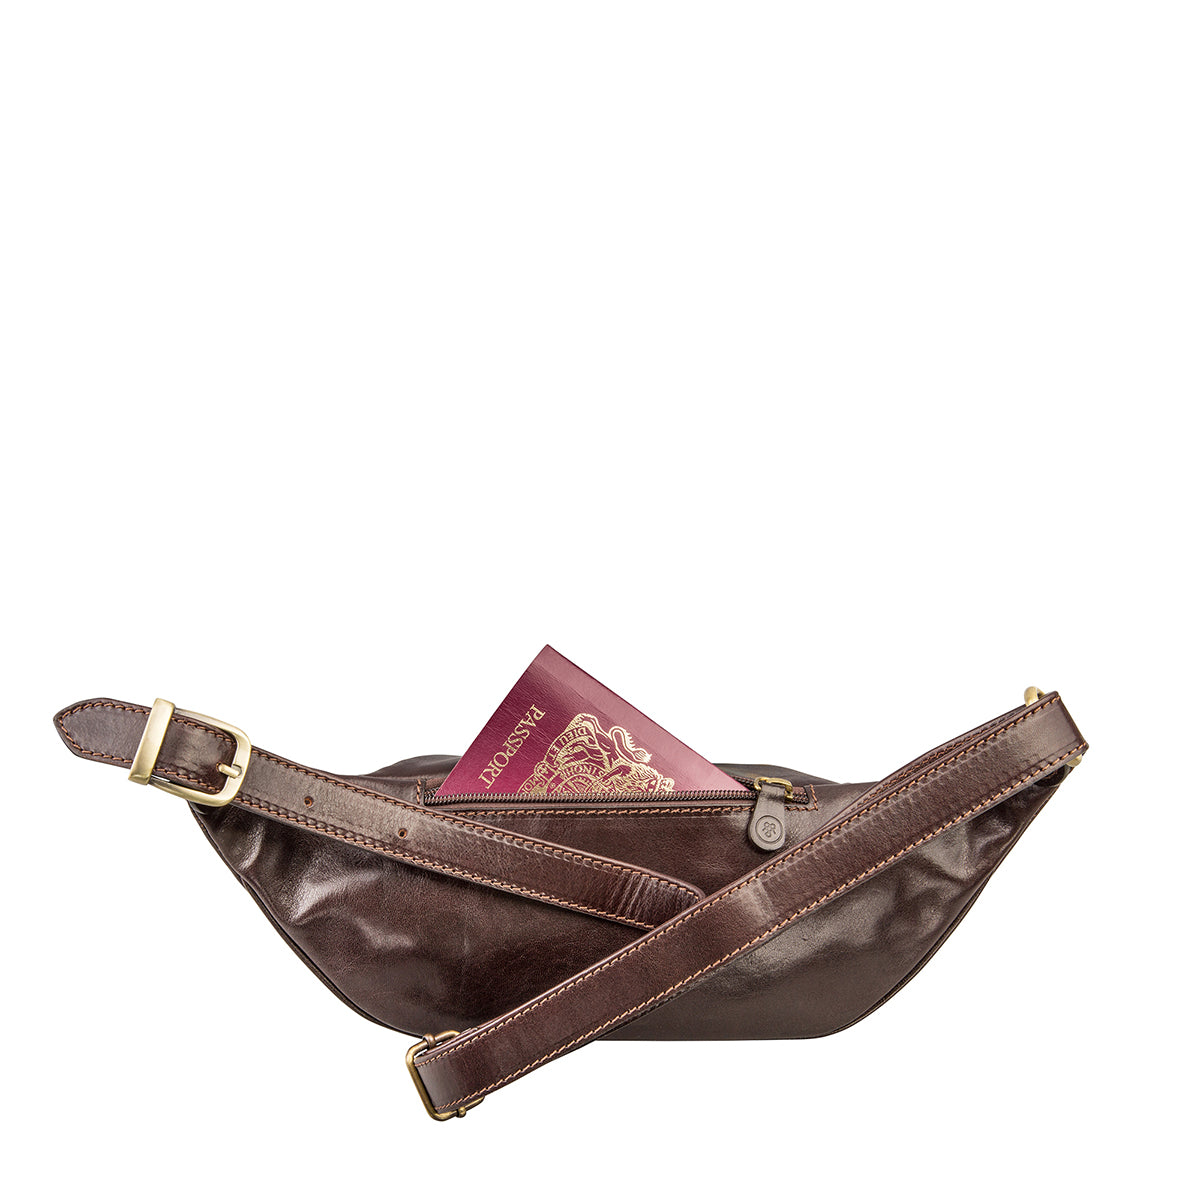 Image 3 of the 'Centolla' Dark Chocolate Veg-Tanned Leather Waist Bag